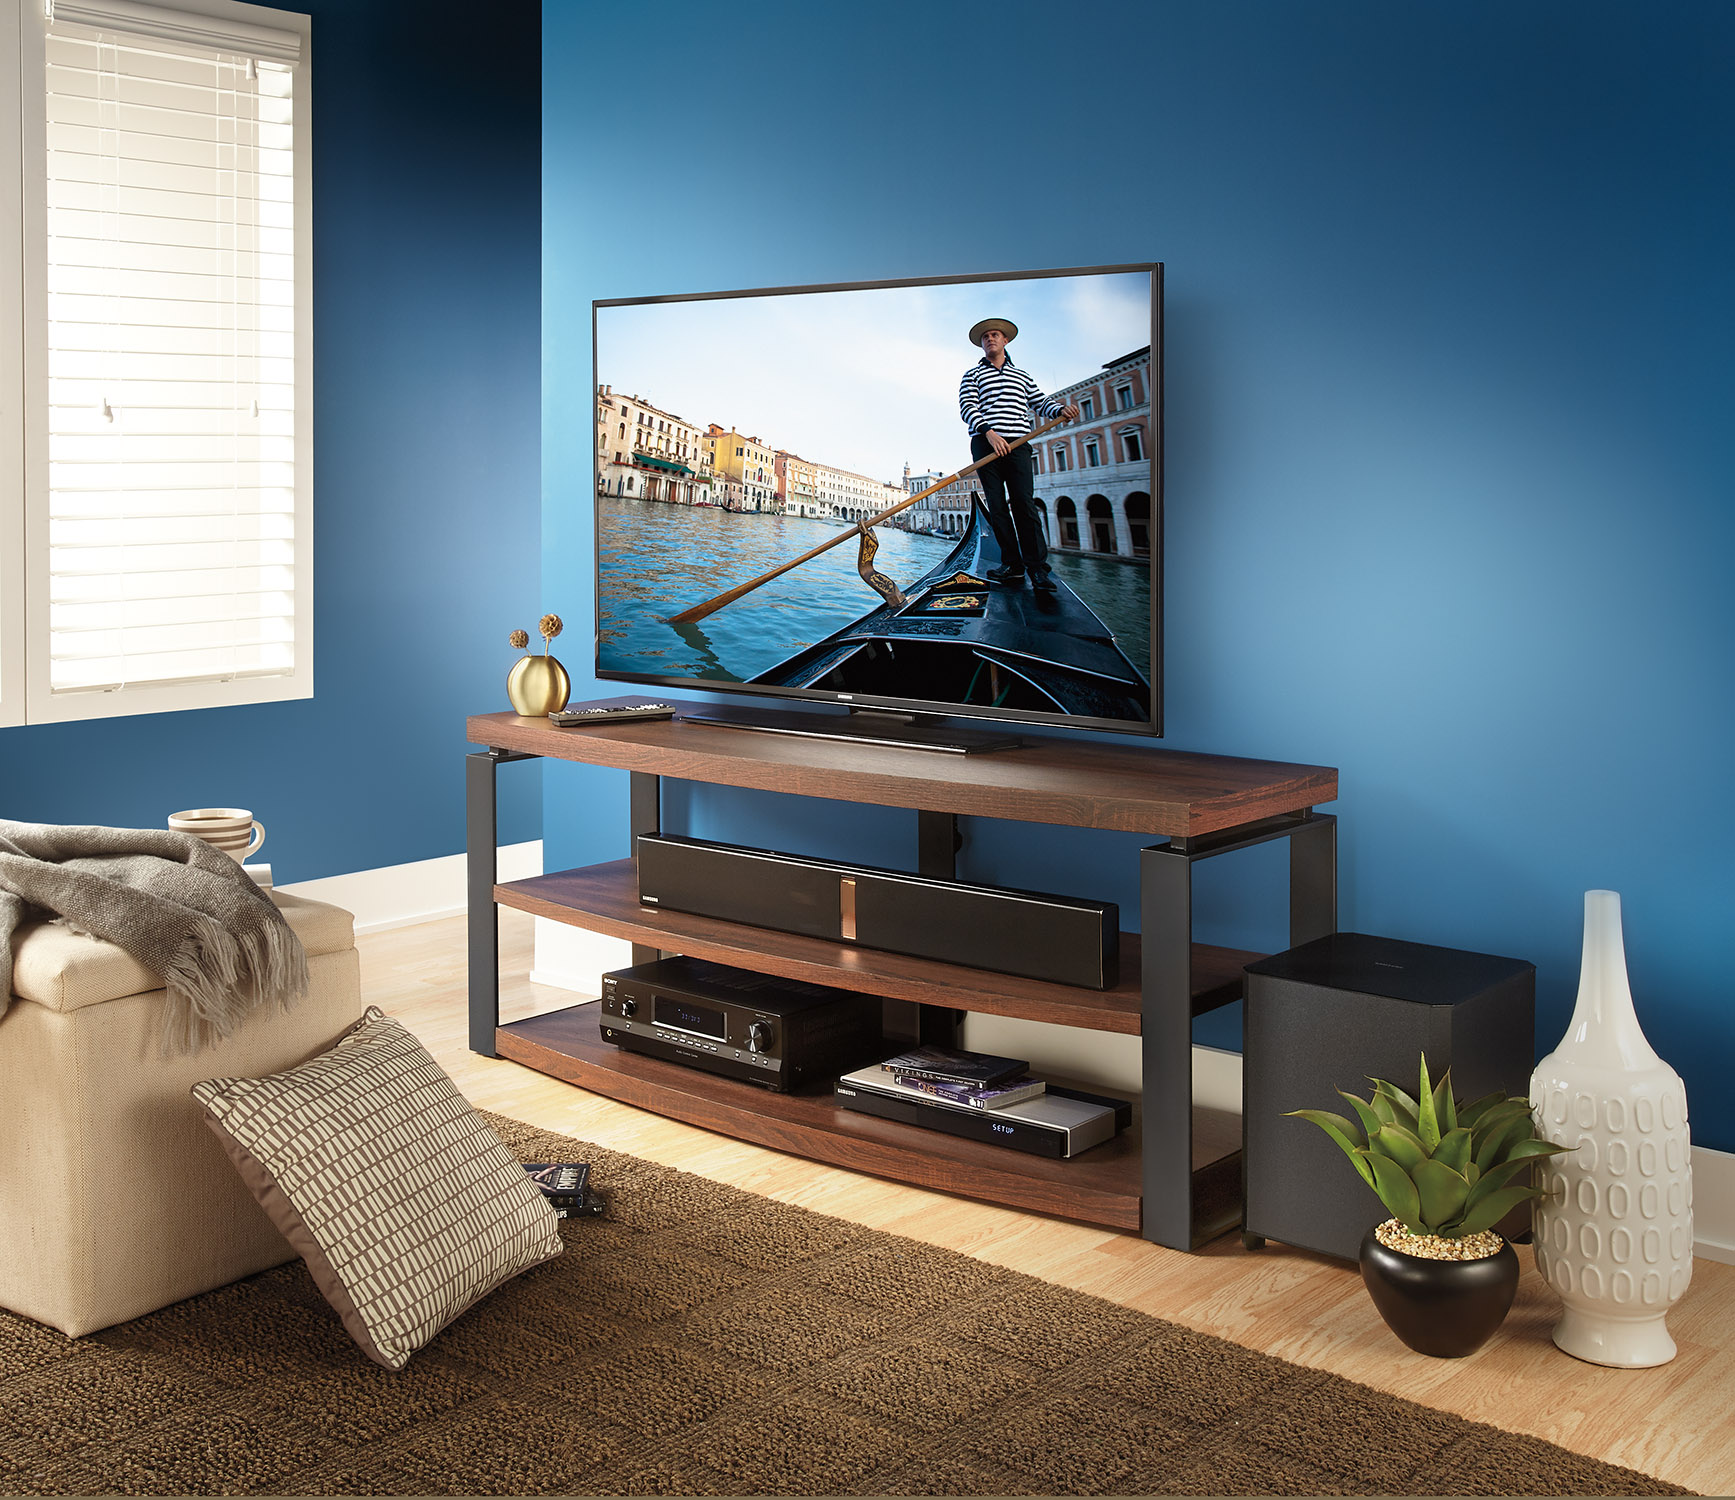 Save Energy and Money with ENERGY STAR sound bars and dryers available at Best Buy